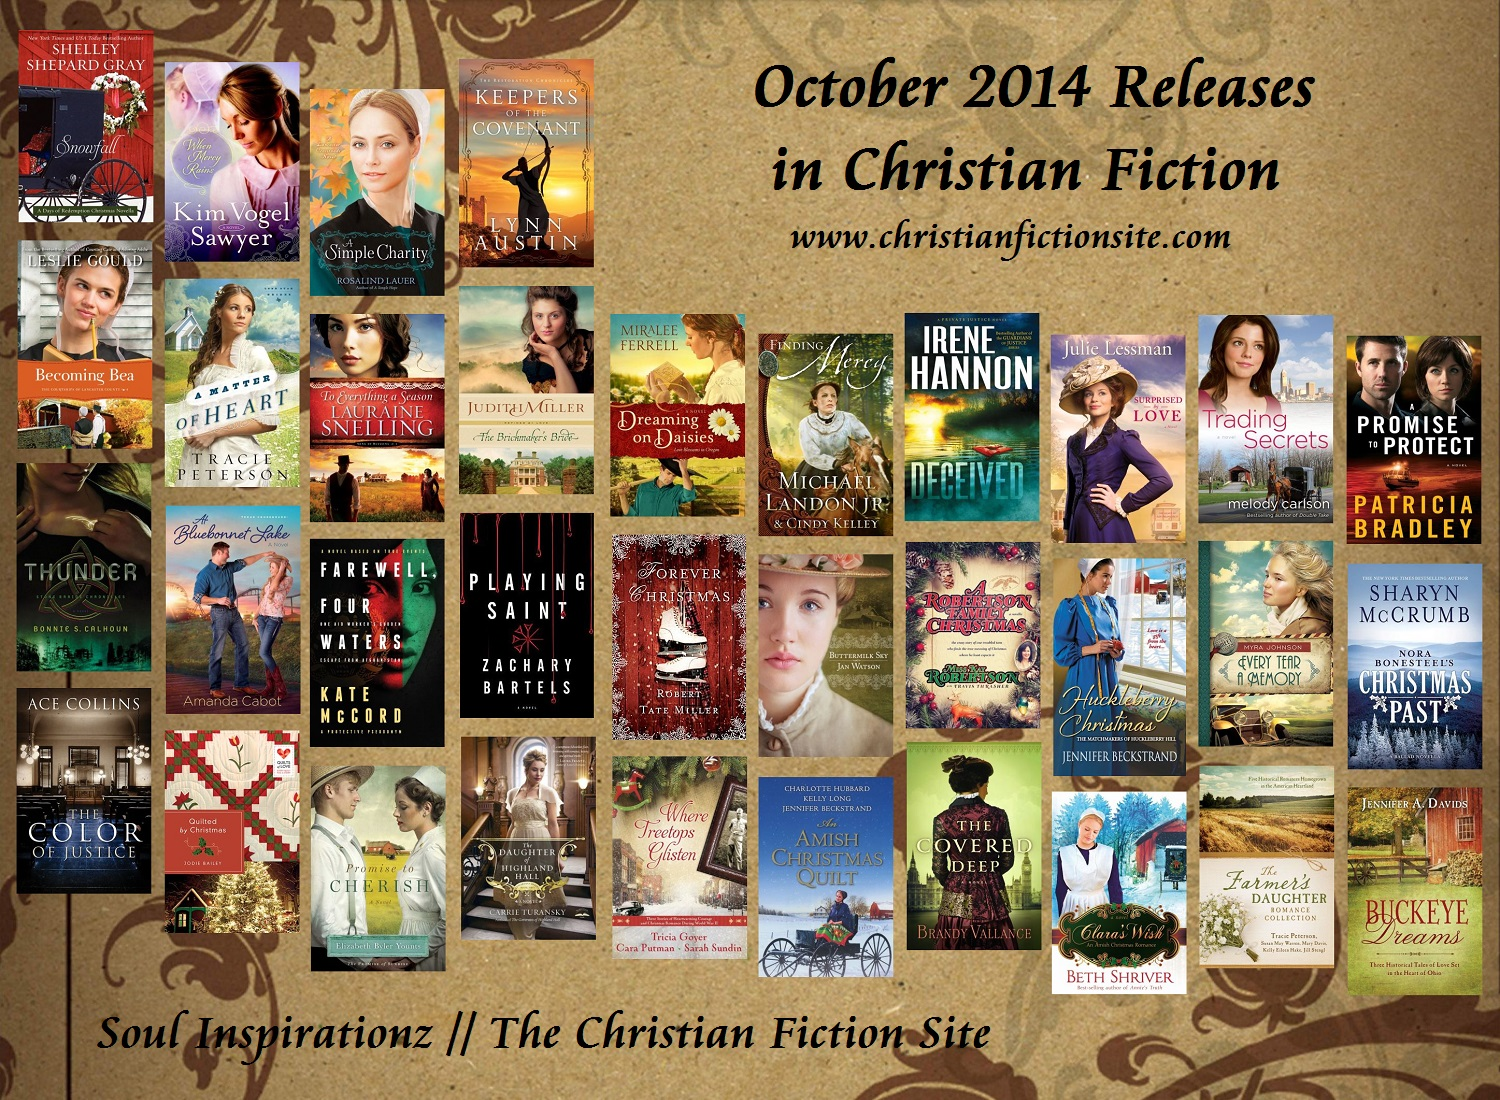 October 2014 Christian Fiction